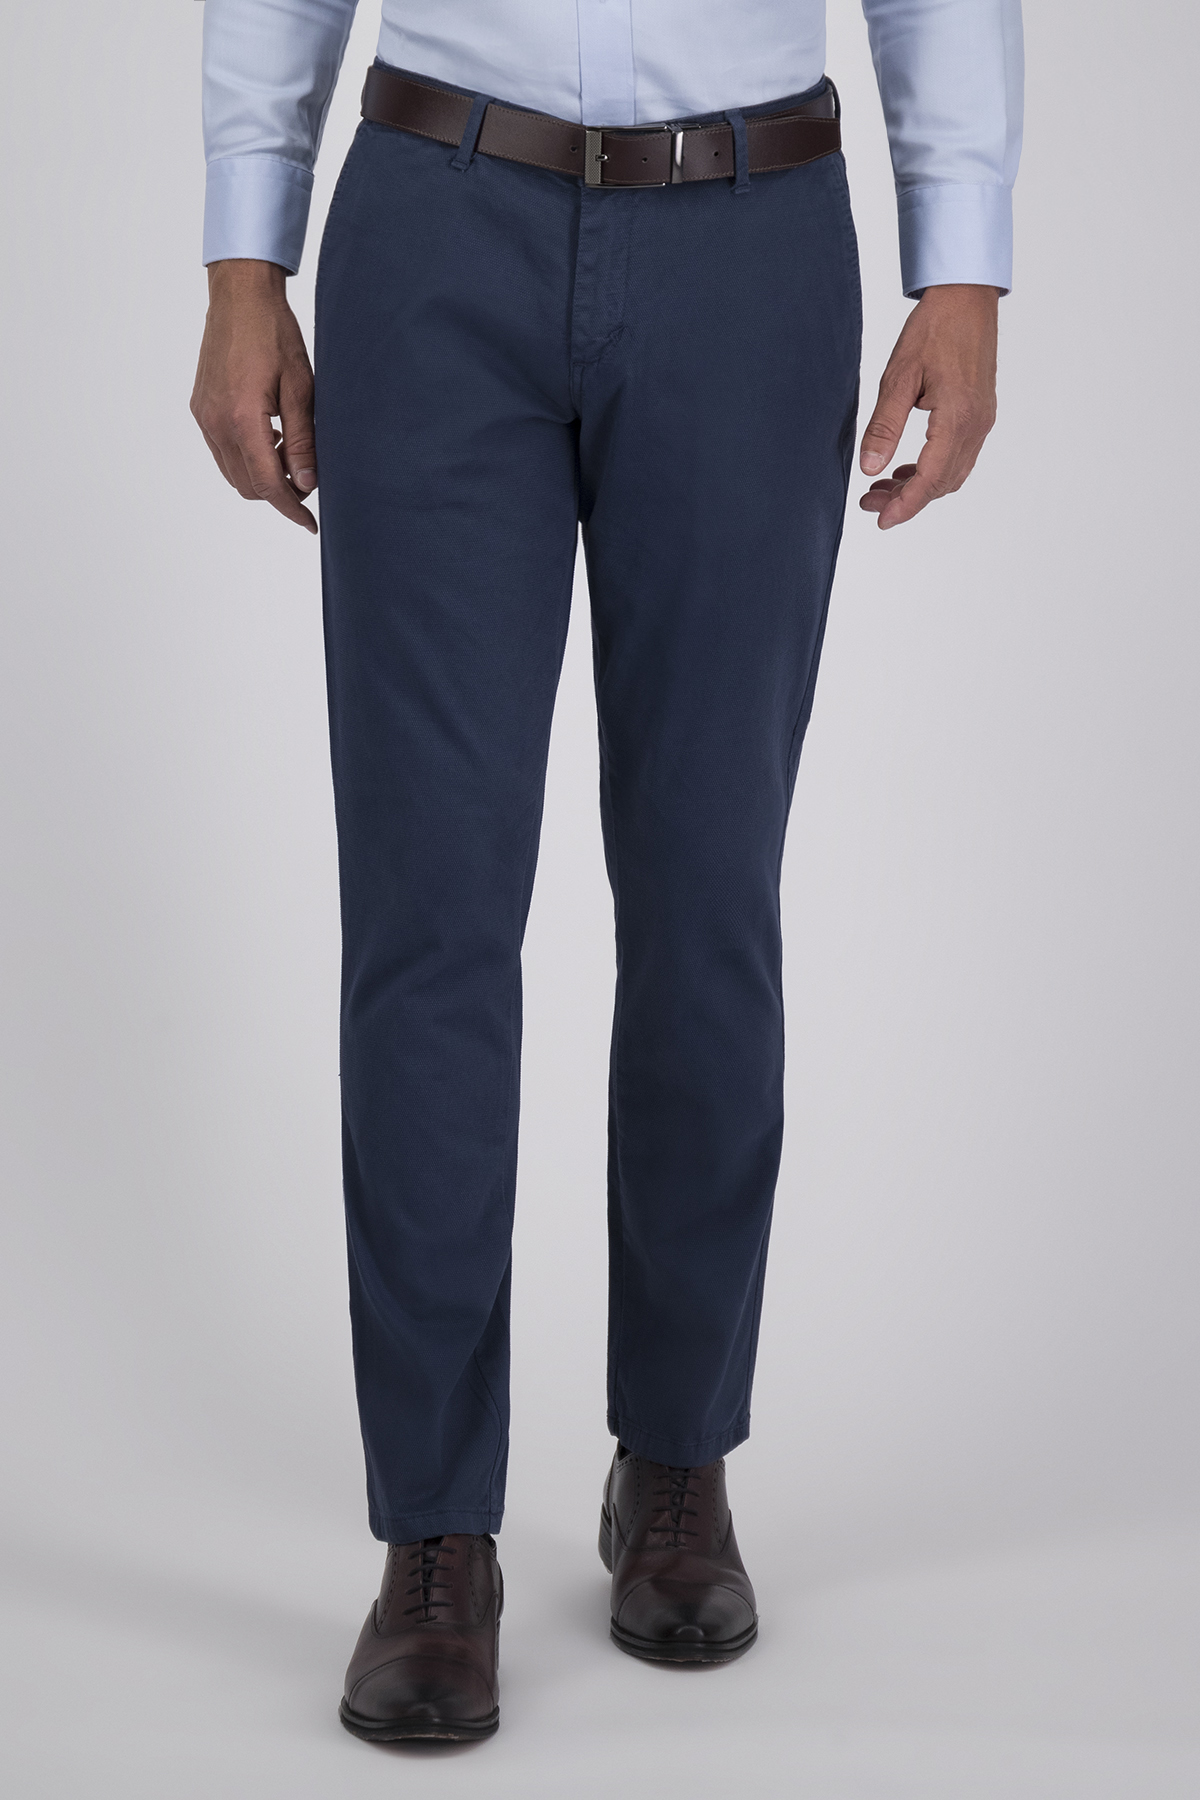 Pantalón Sport High Life, Algodón 100%  Azul, Corte Slim, Tipo Chino, Made in Italy.